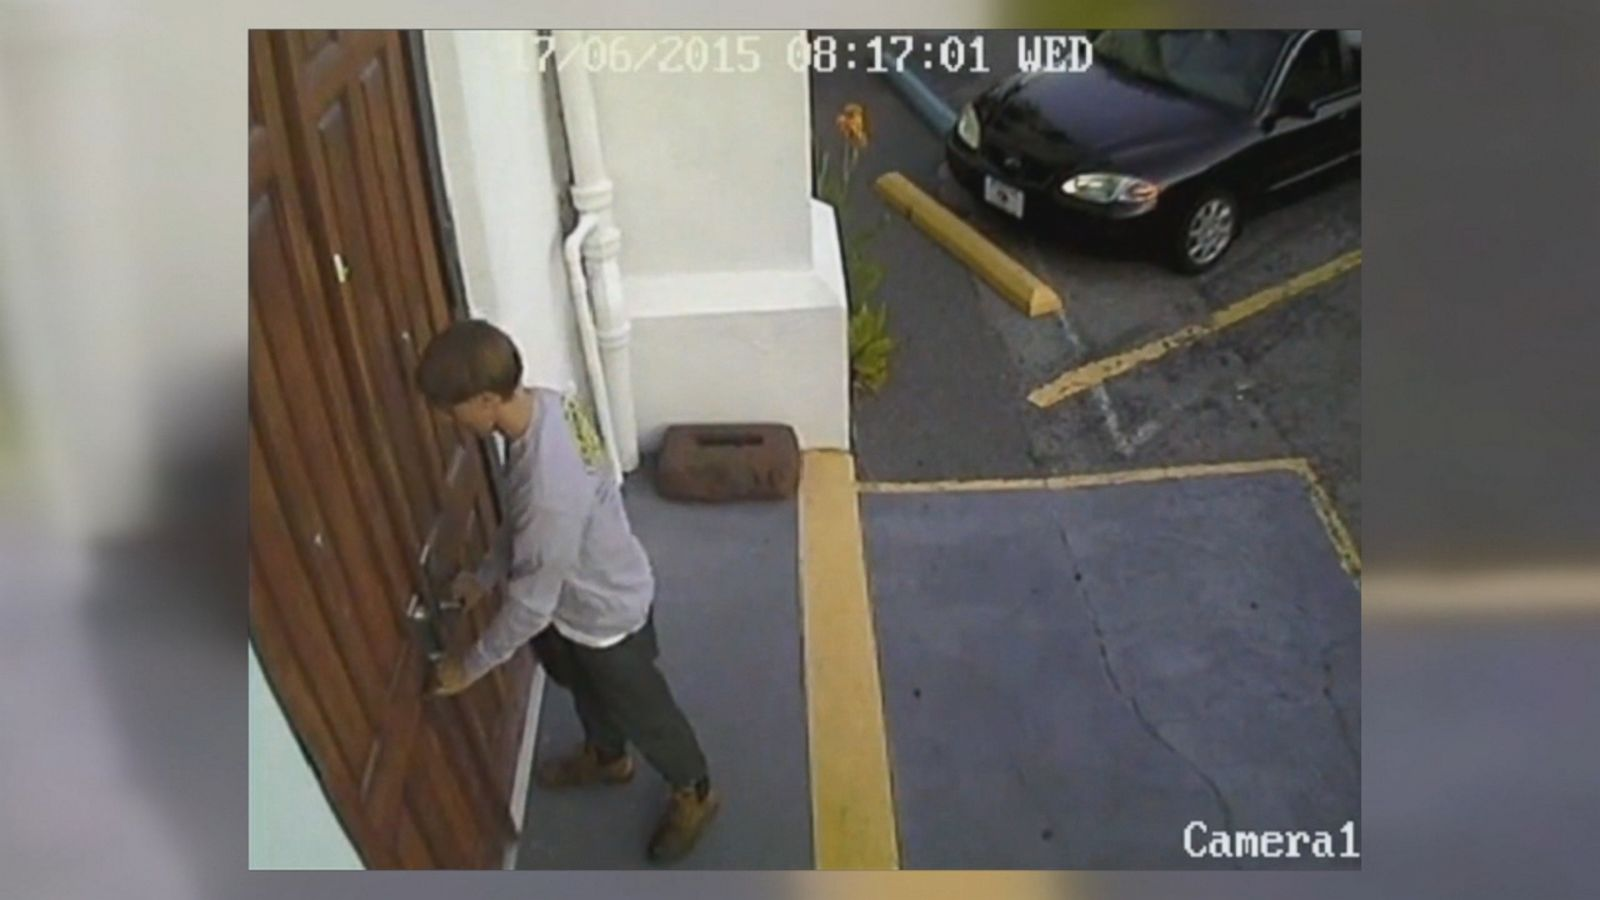 Jurors in the Charleston church shooting trial viewed videos today of Dylann Roof entering and exiting the Emanuel AME Church on June 17, 2015.